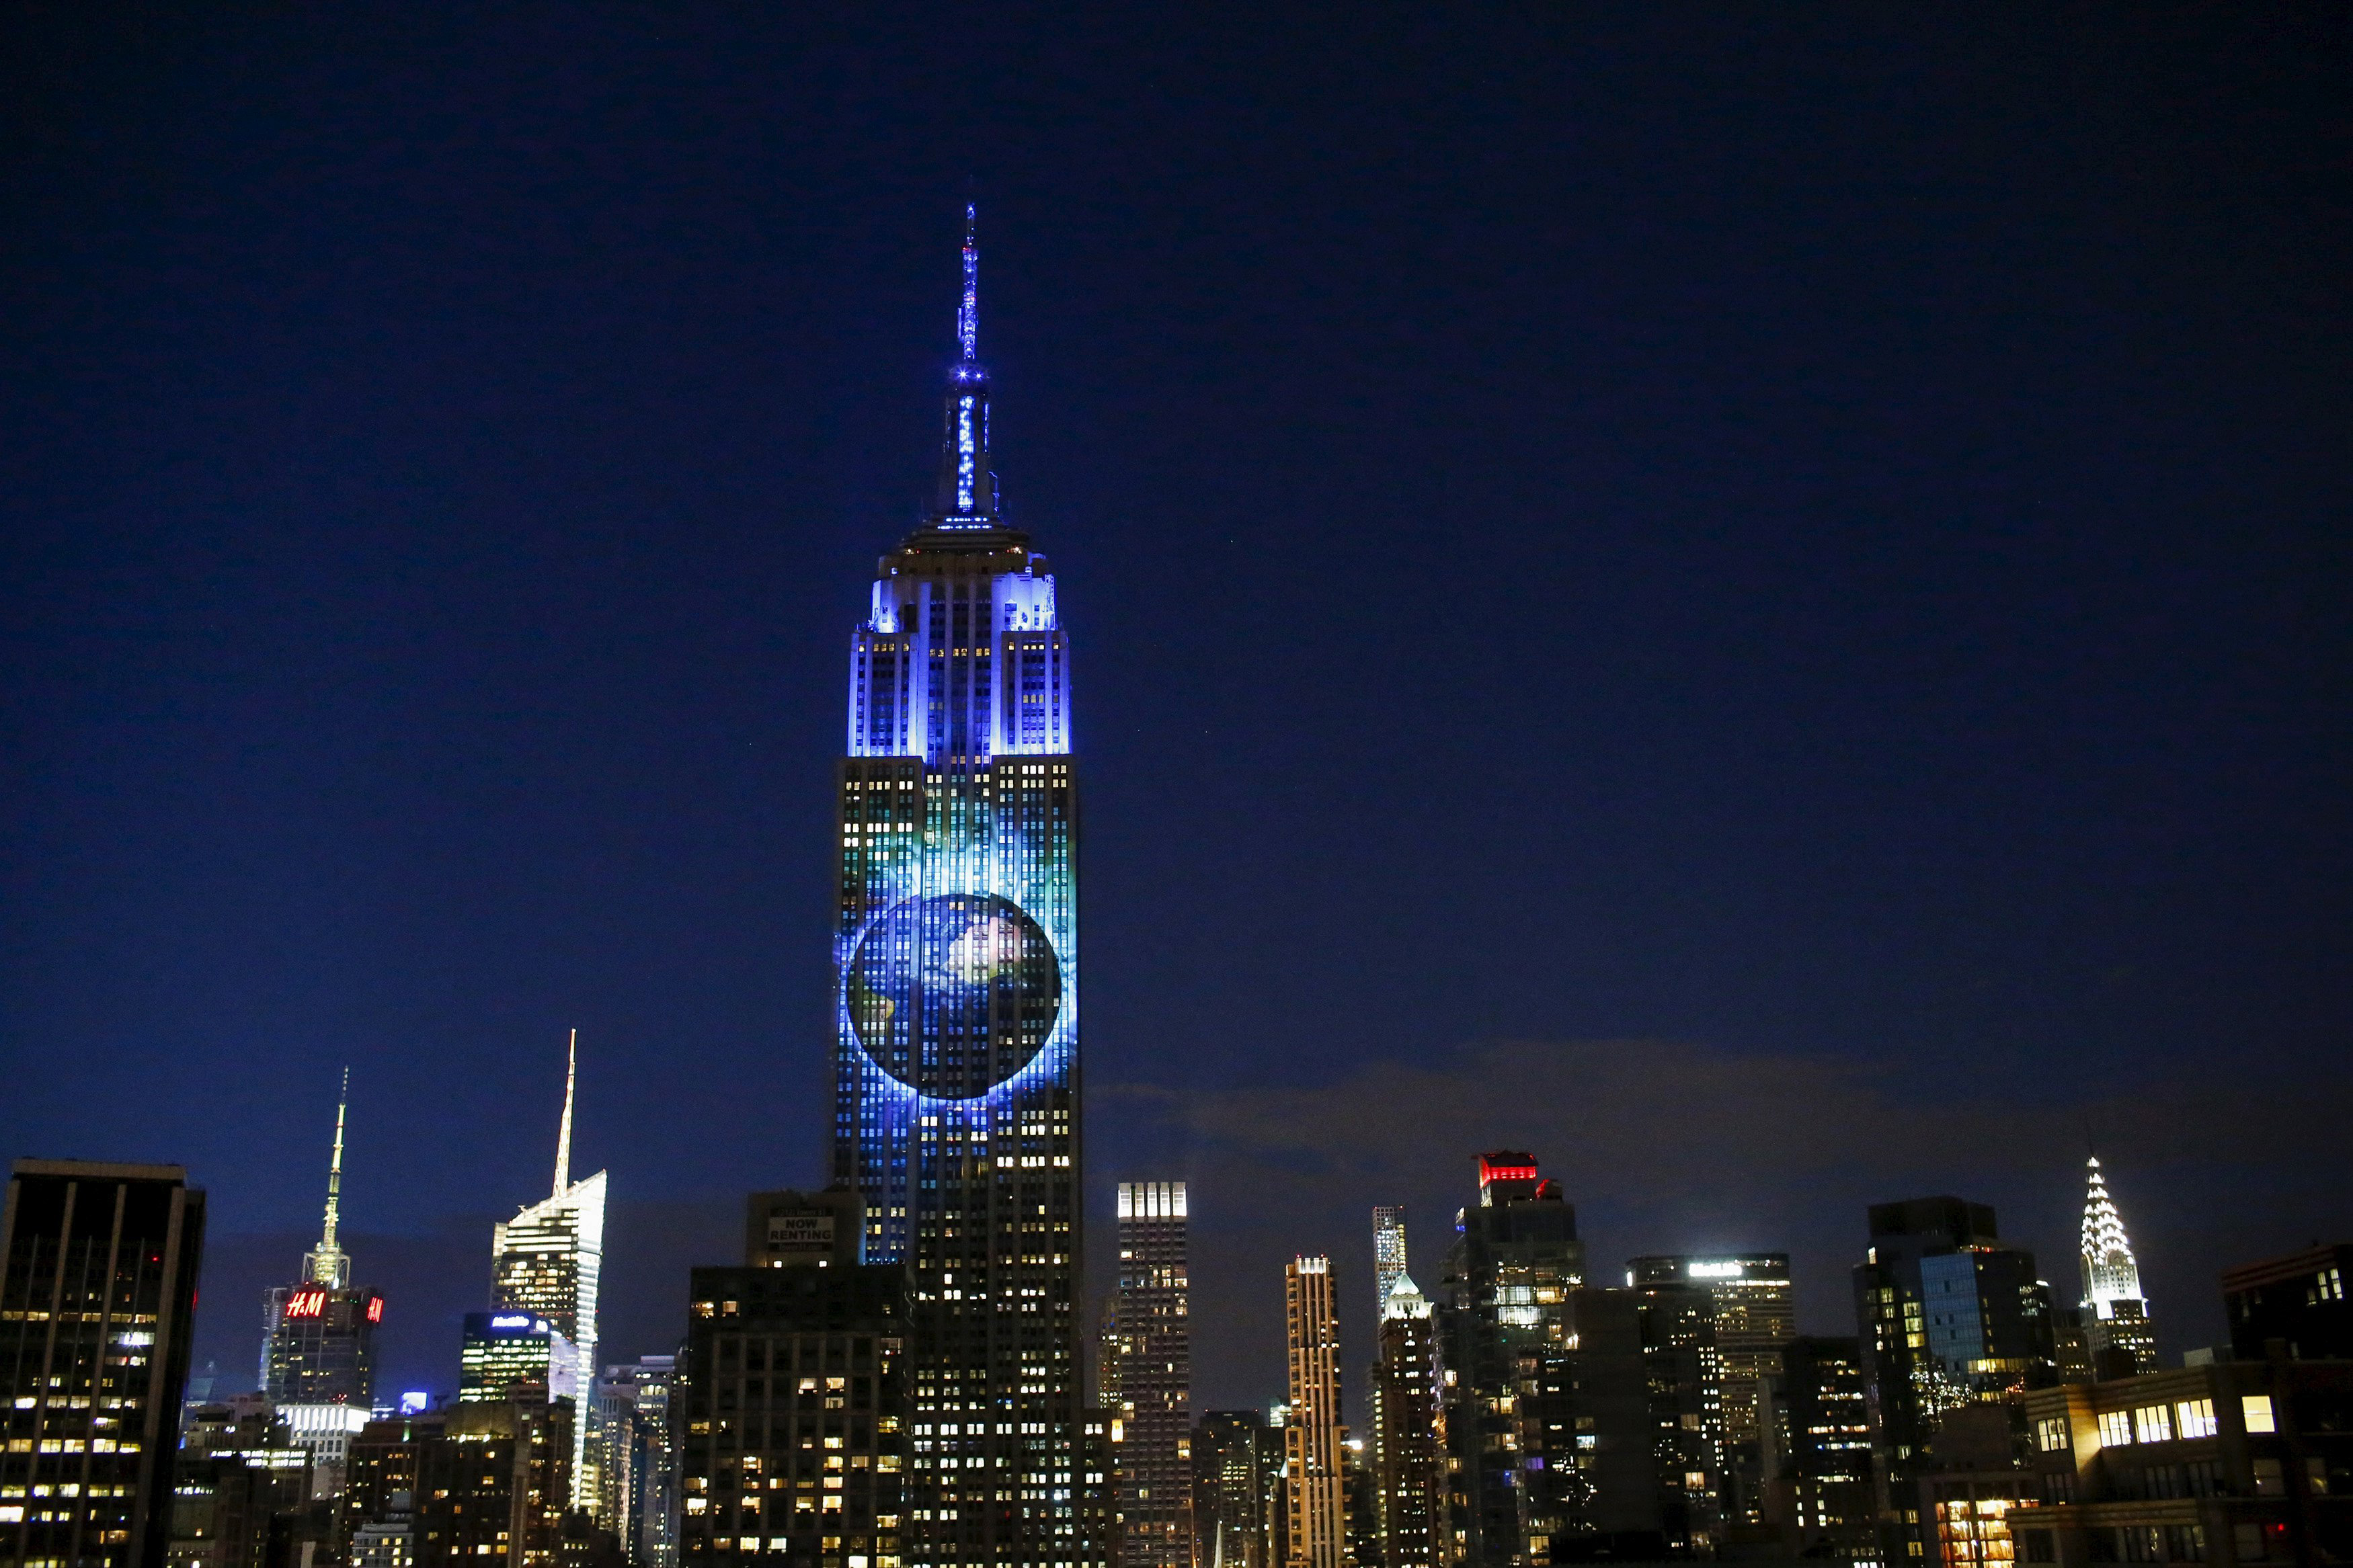 An image of the earth is projected onto the Empire State Building as part of a project to raise awareness about endangered species, in New York City on August 1, 2015.